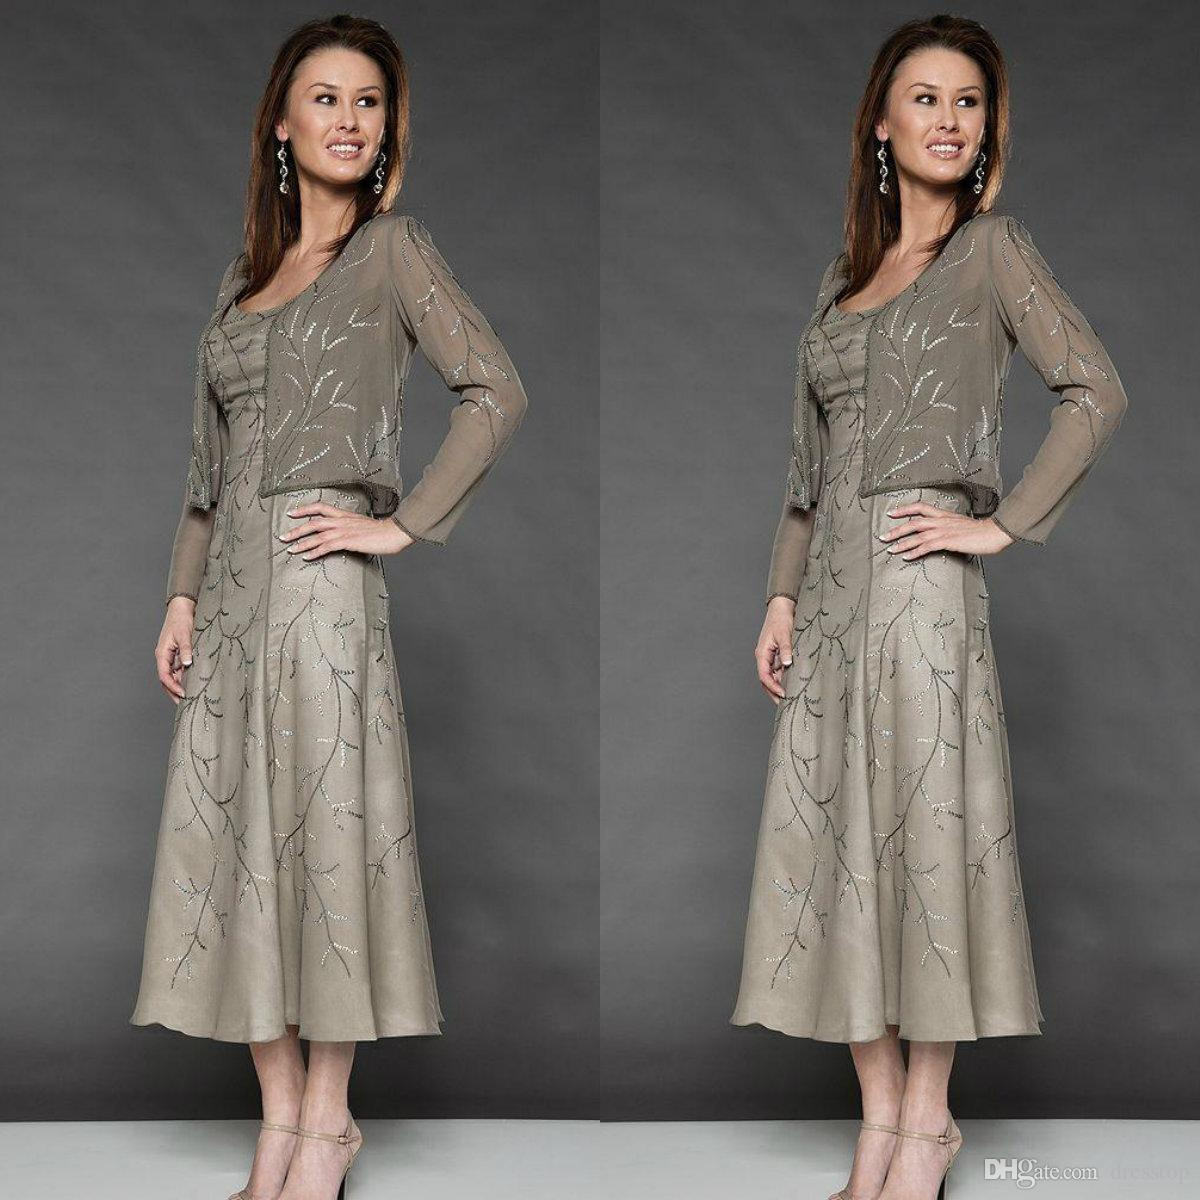 Elegant Embroidery Mother Of The Bride Dresses Beaded Scoop Neckline Tea-Length Occasion Dress With Jacket For Wedding